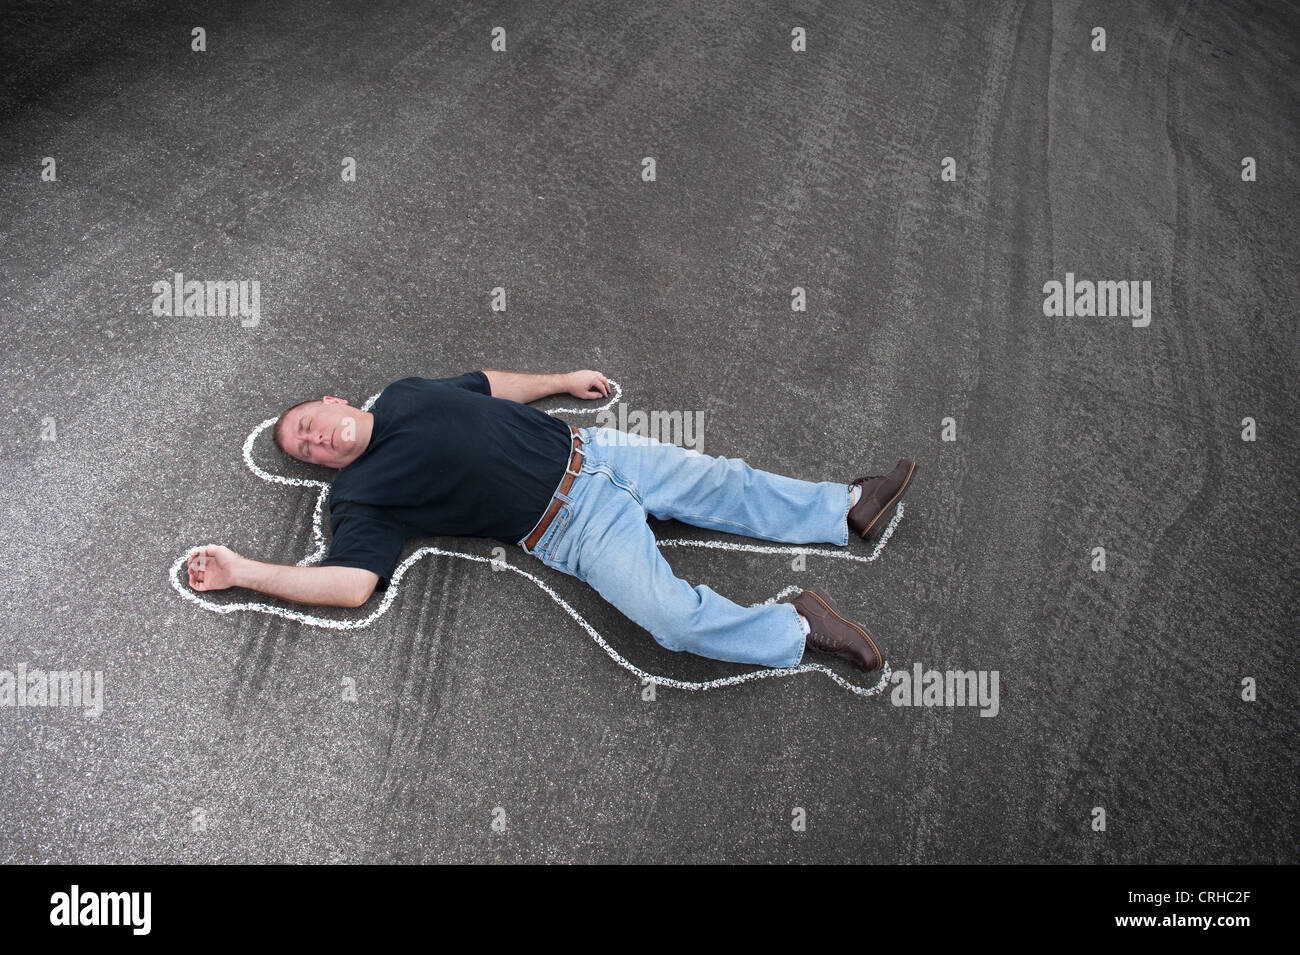 A man dead in the street outlined with chalk by crime scene investigators. - Stock Image